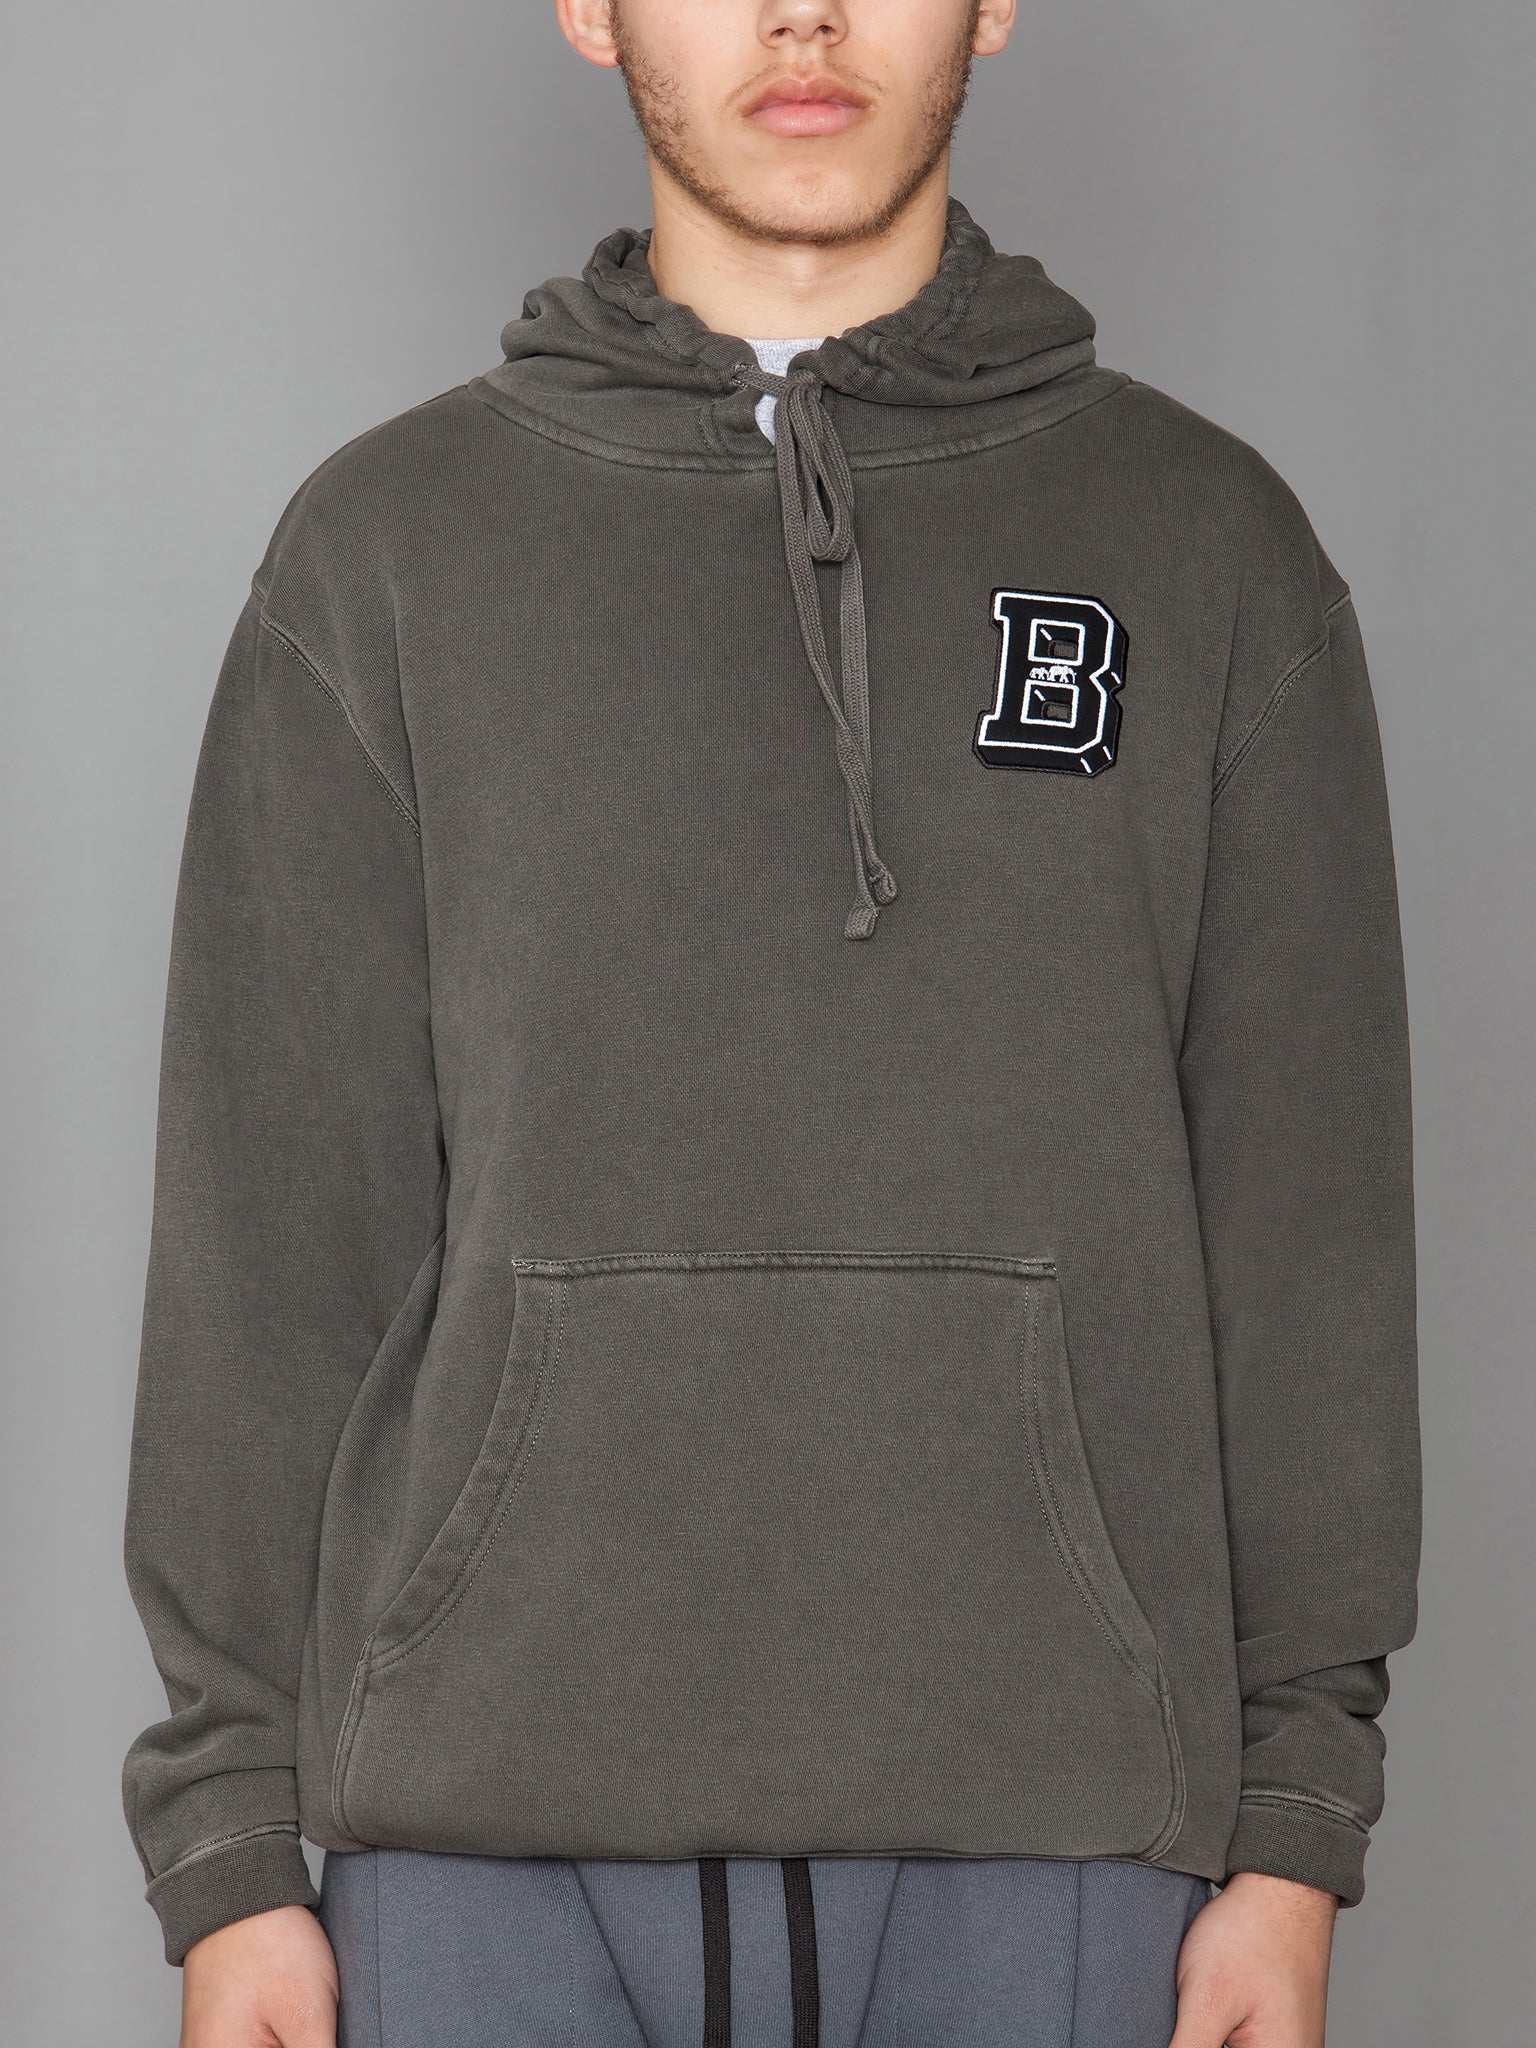 "BKc  ""Gray Panther"" Hoodie"